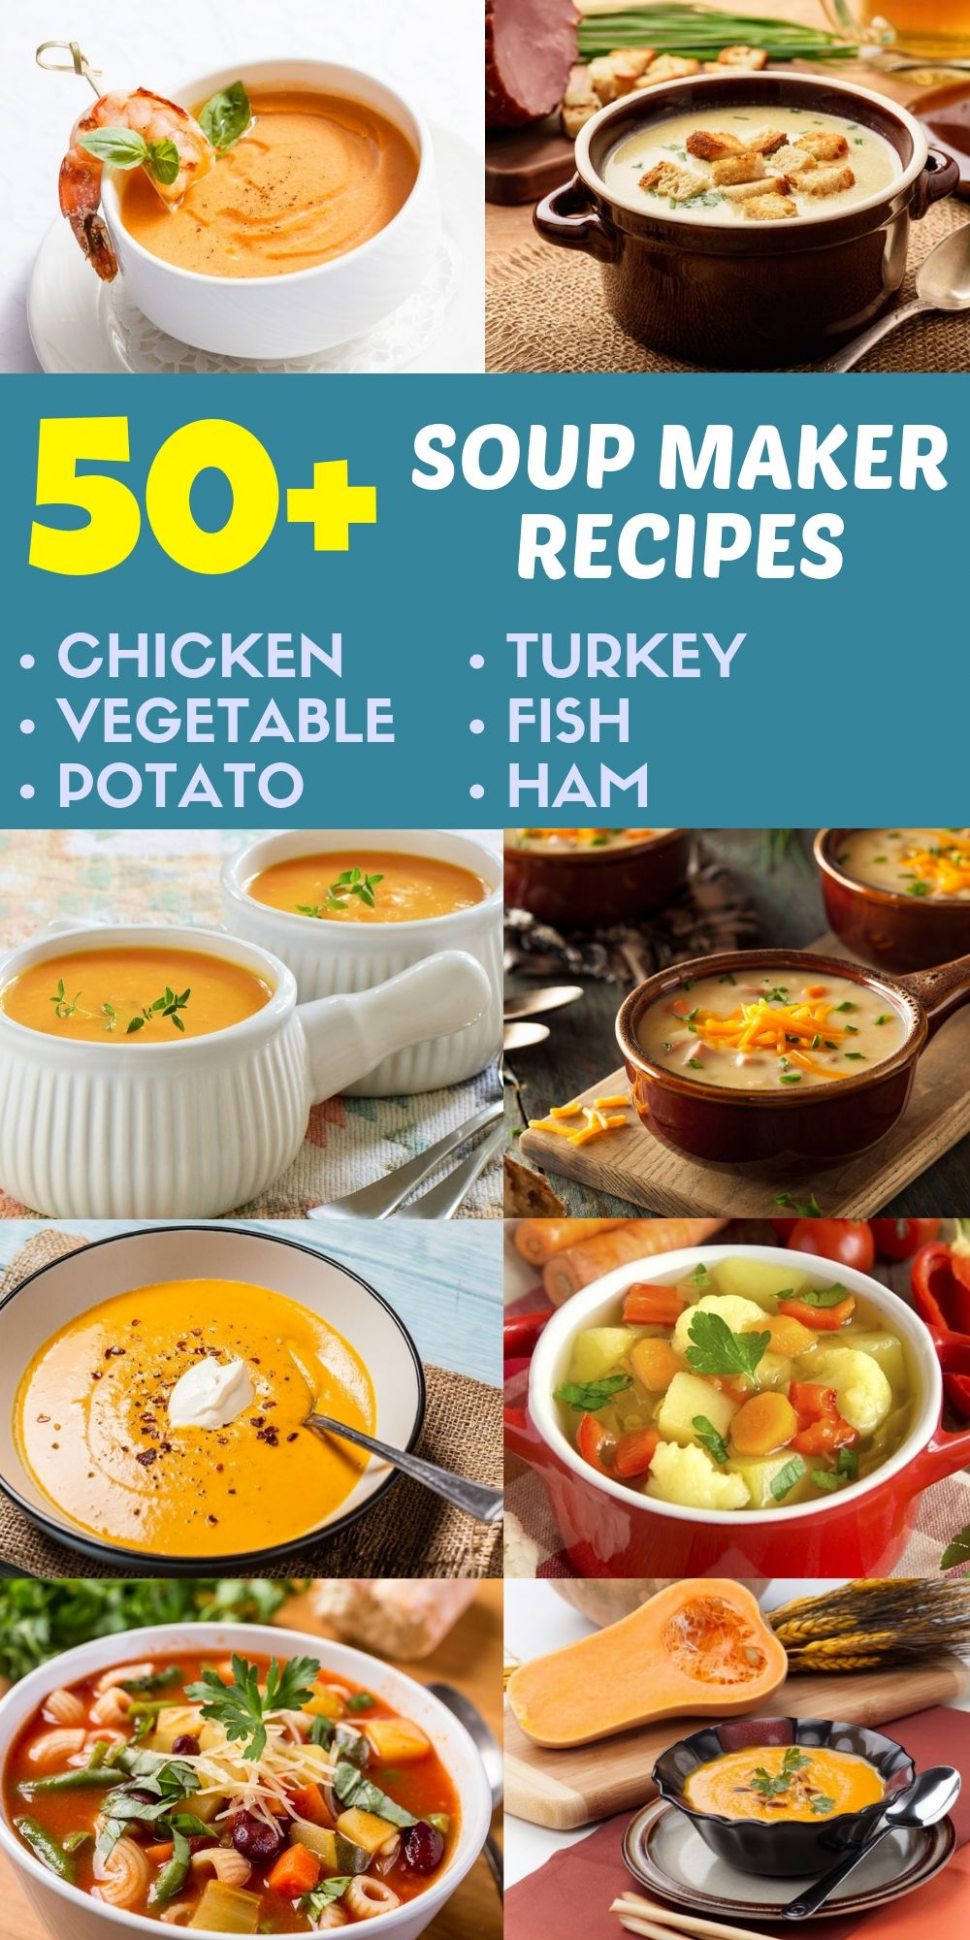 Soup Maker Recipes For Beginners | Tomaten und Suppen - Recipes Soup Maker